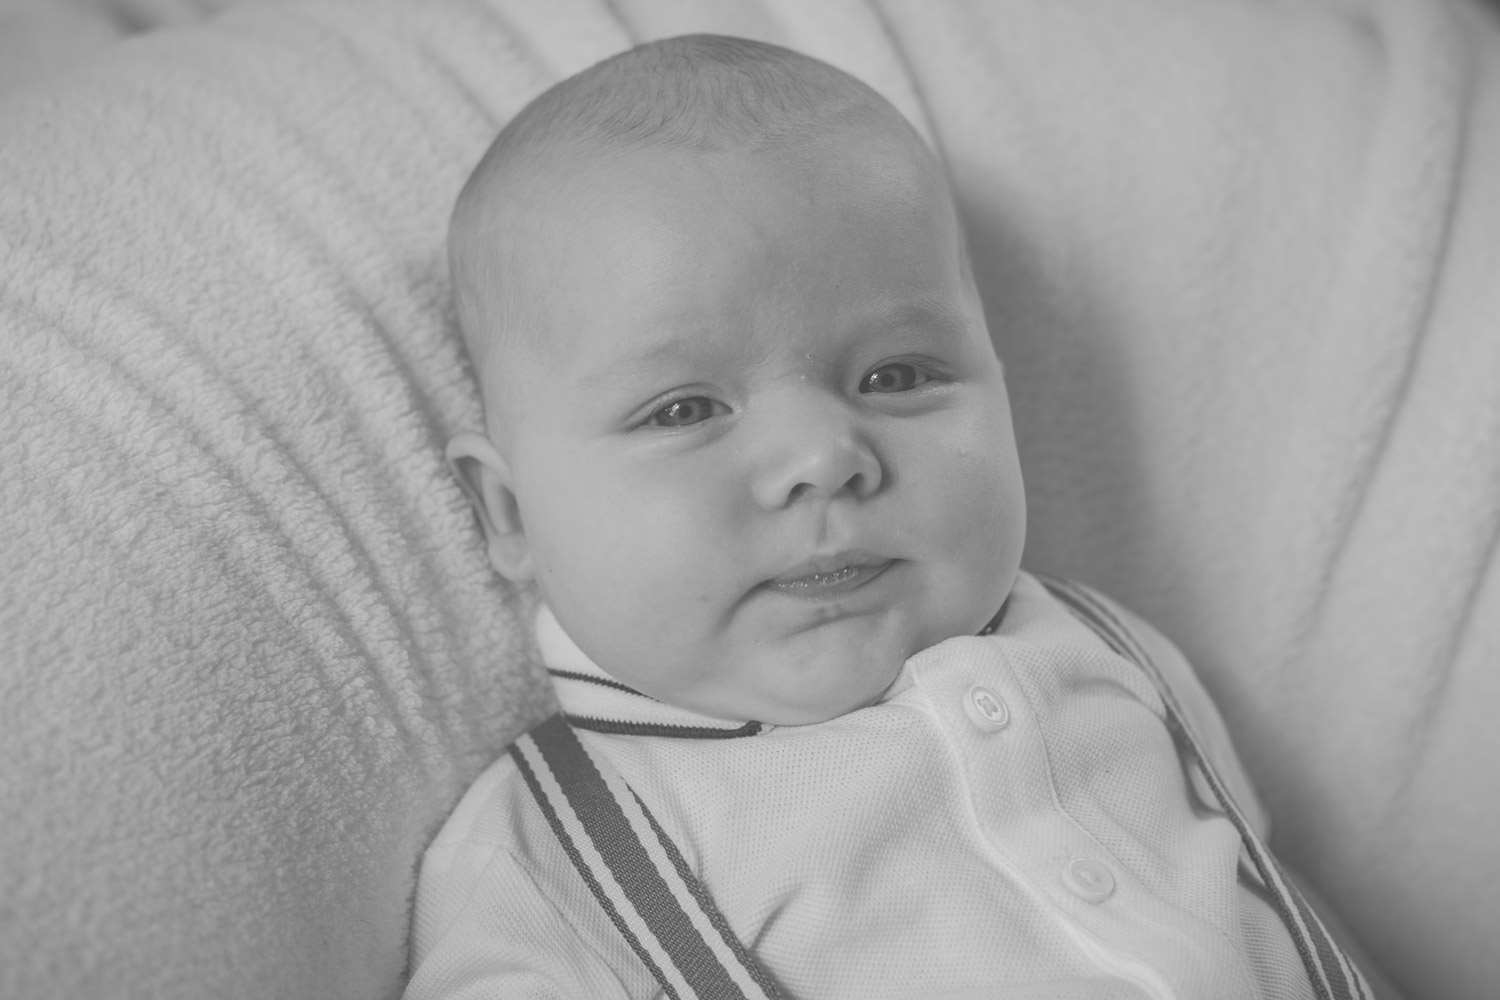 family-baby-portraits-photographer-in-keighley-bradford-leeds-16